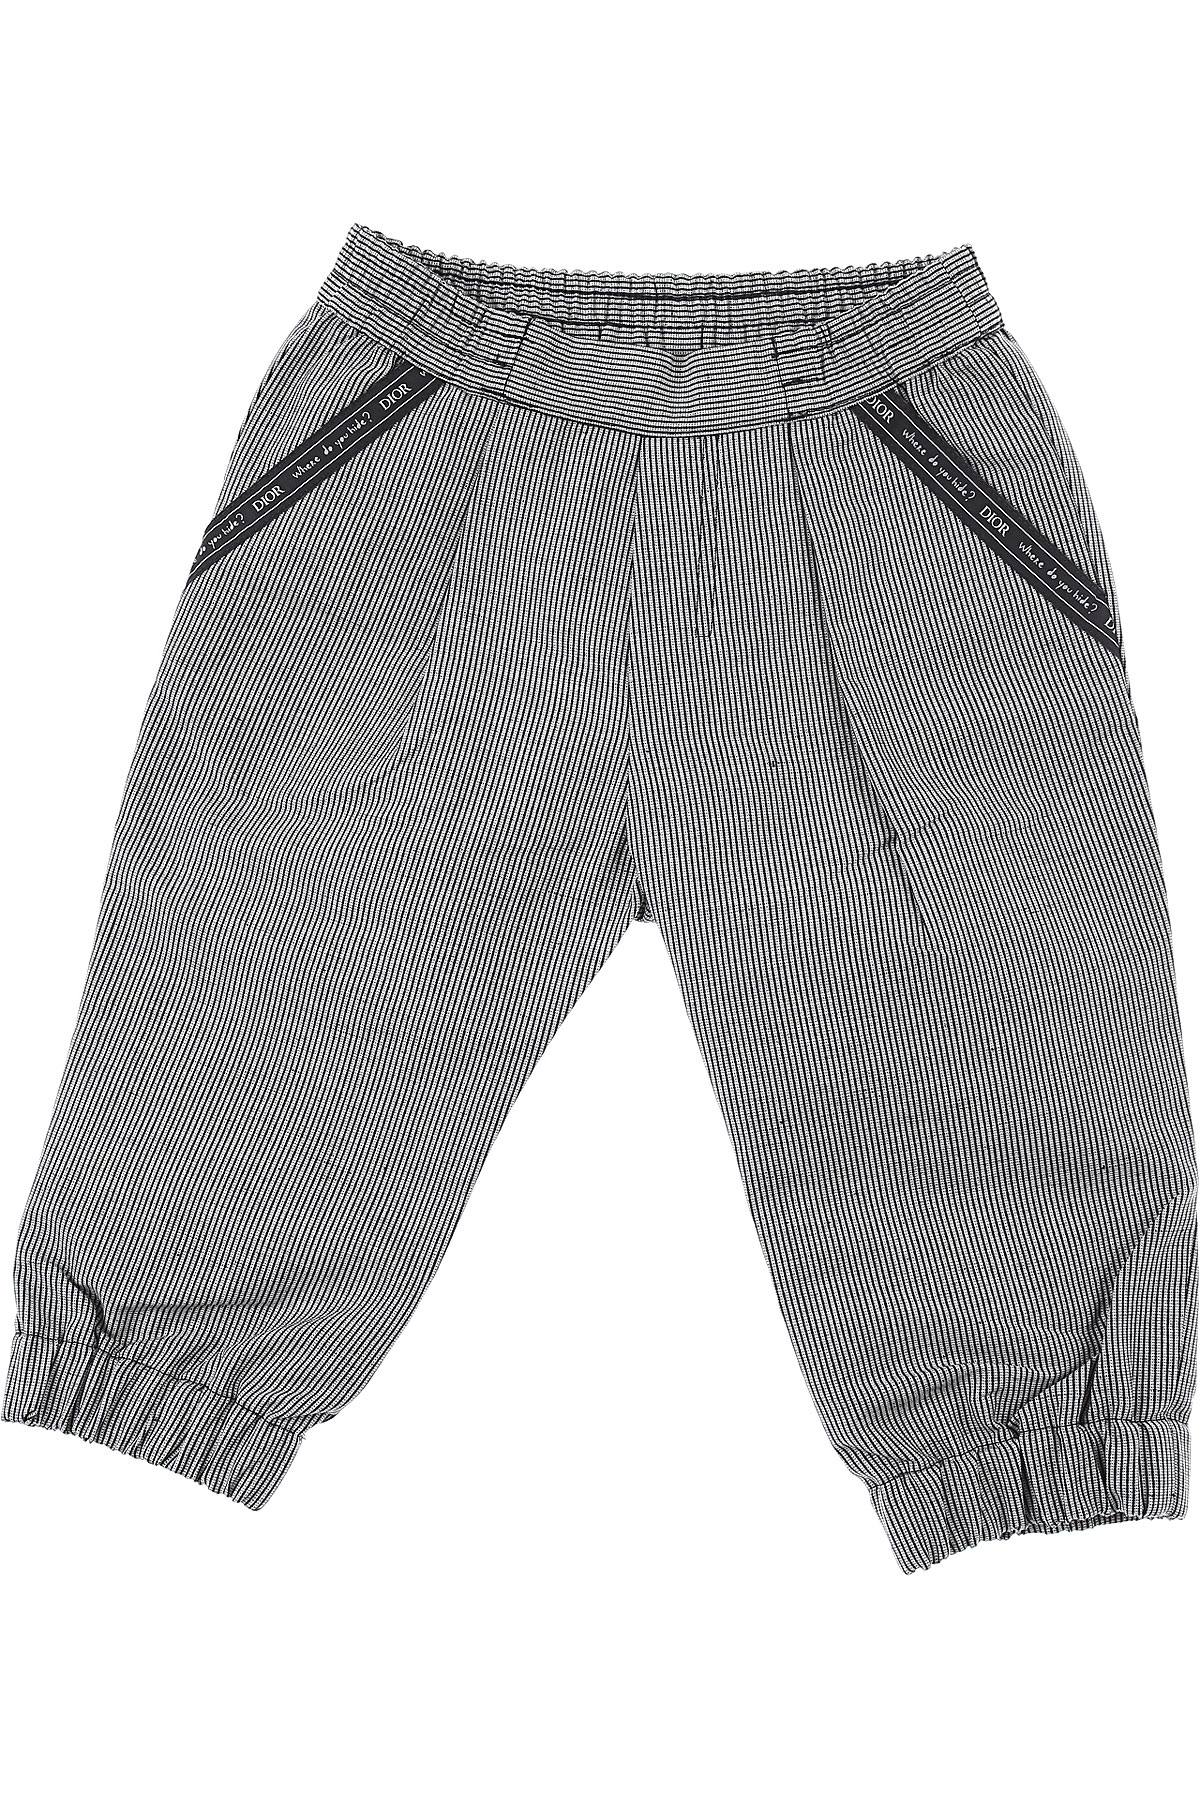 Baby Dior Baby Pants for Boys On Sale, Grey, Cotton, 2019, 12 M 18 M 2Y 3Y 9 M